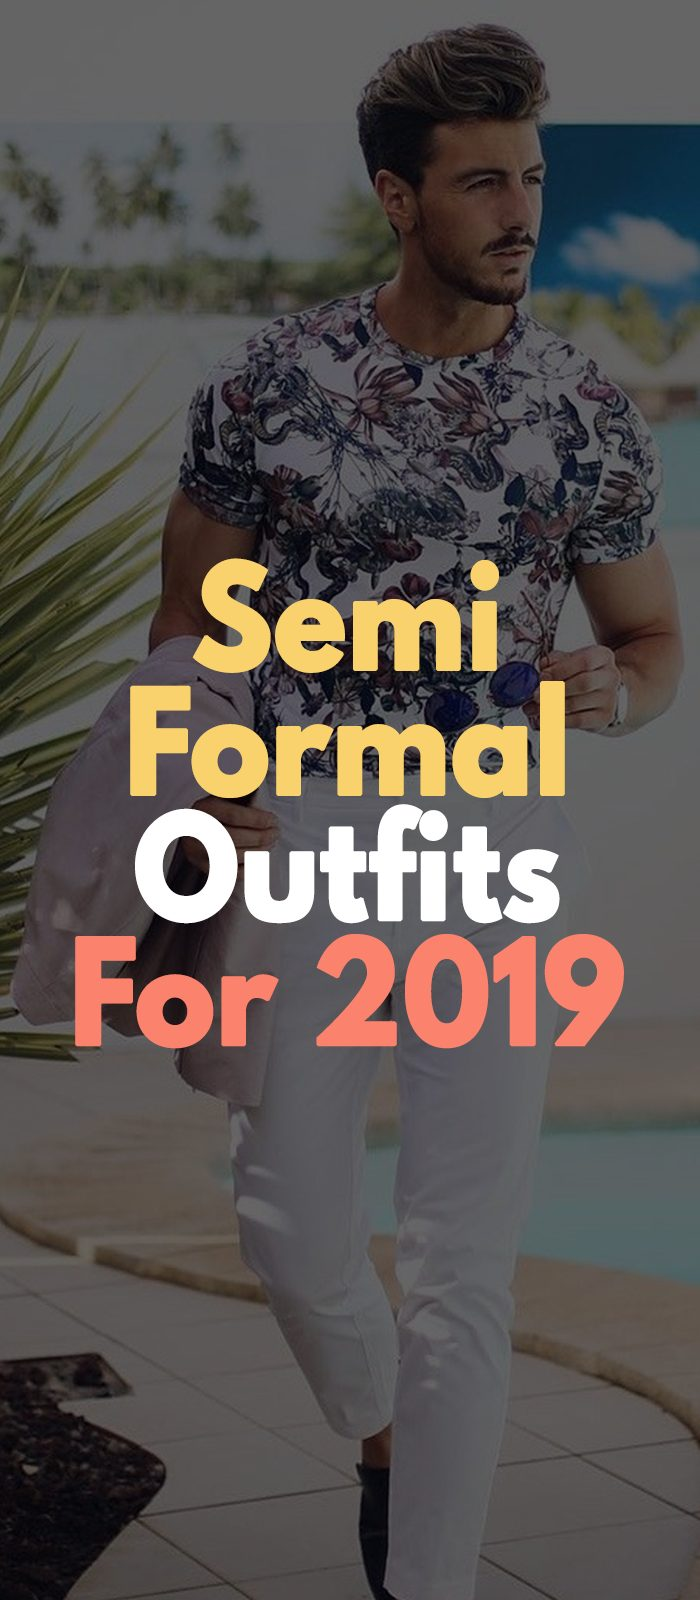 Semi Formal Outfits For 2019